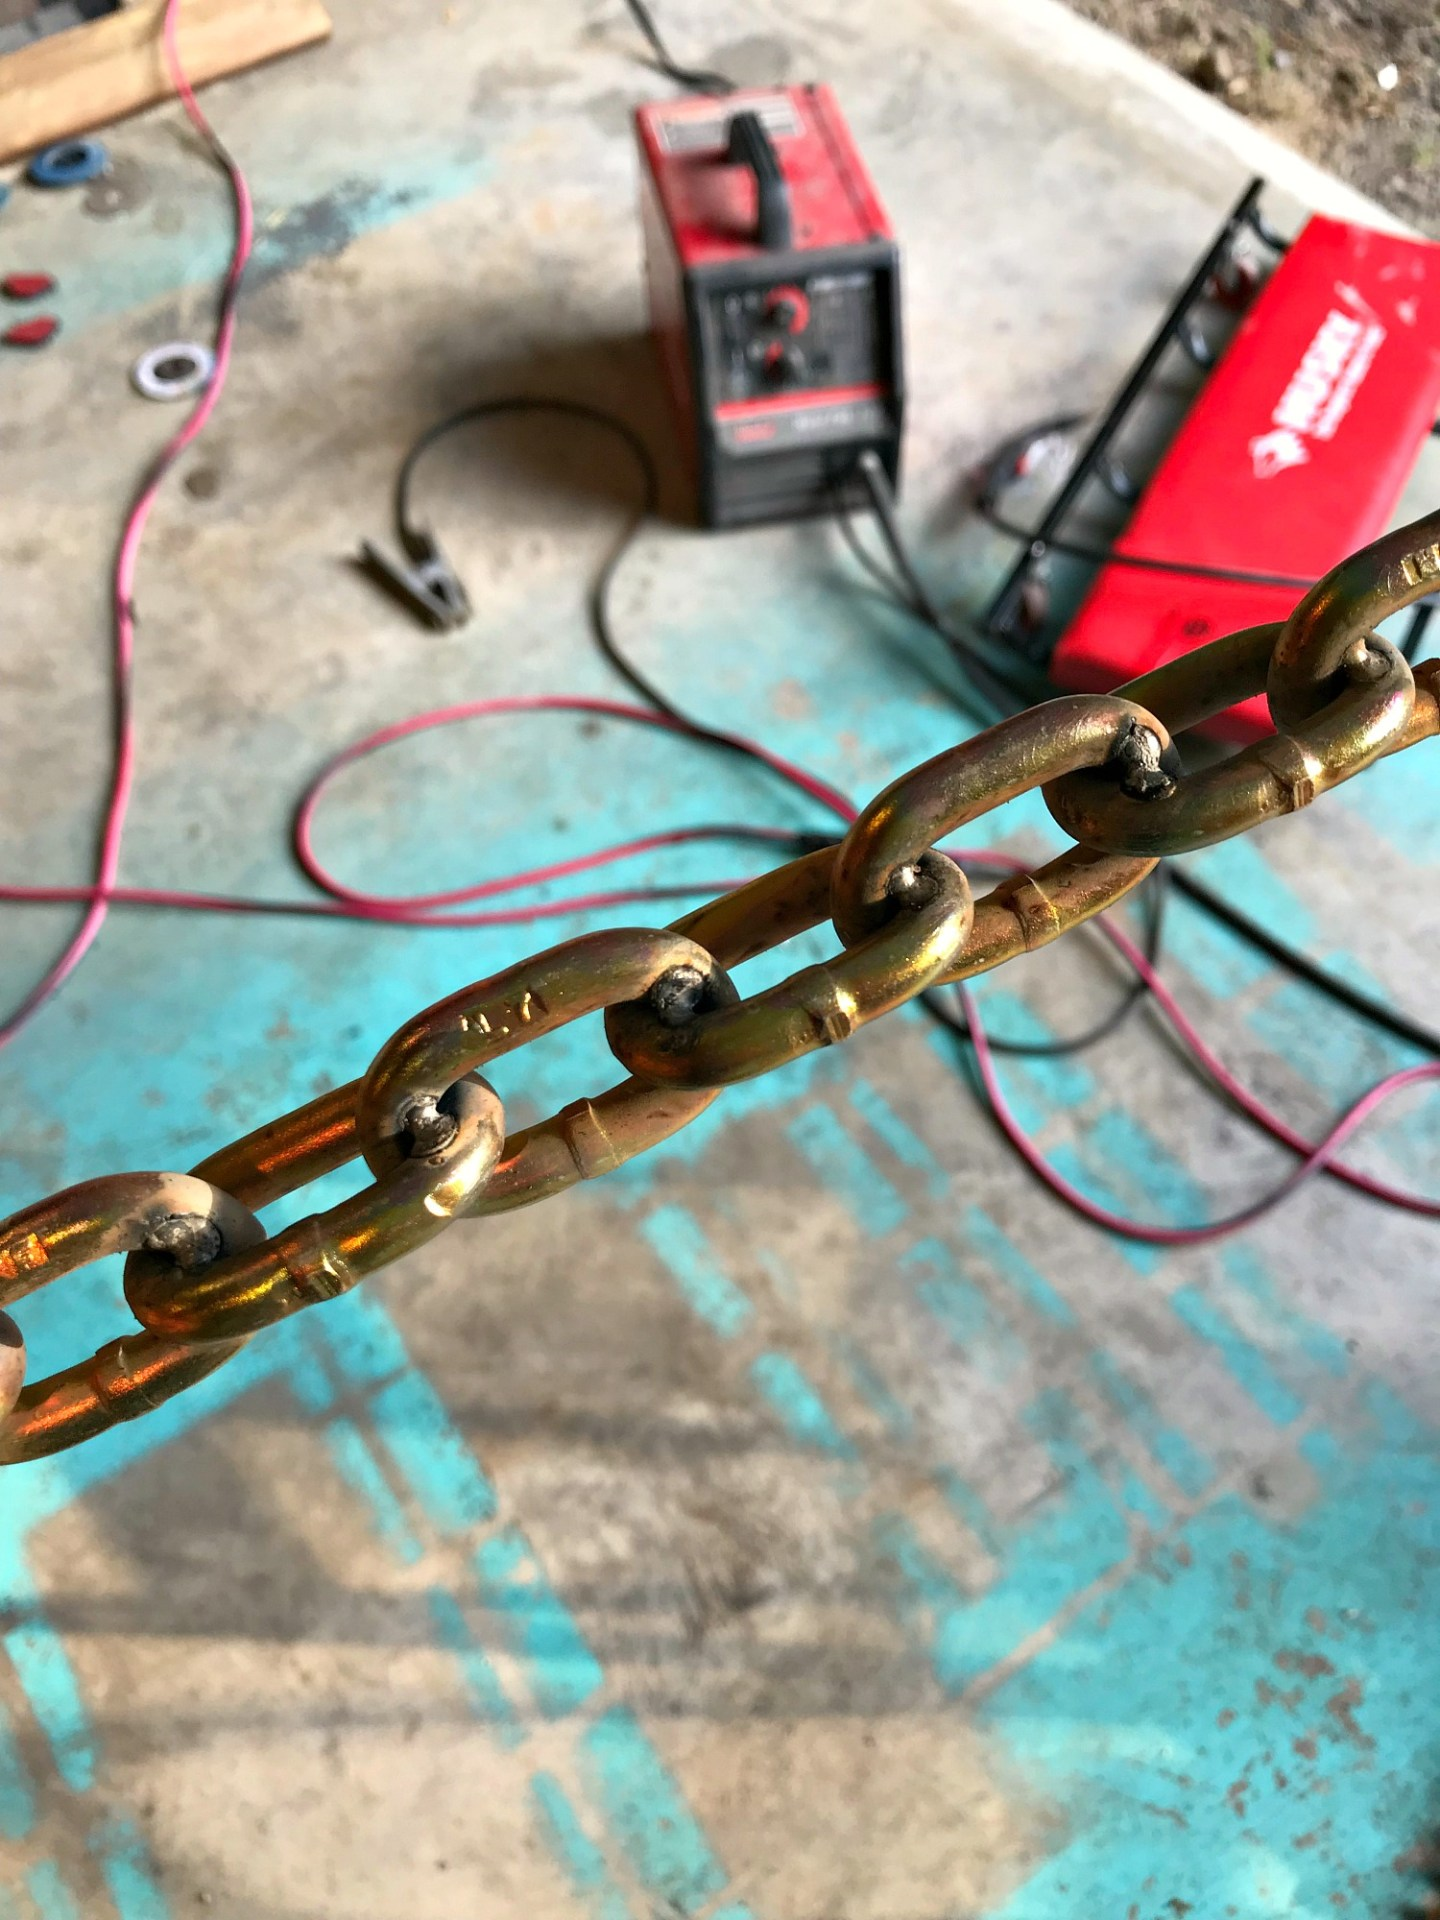 How to Weld Chain | DIY Welded Chain Table Legs